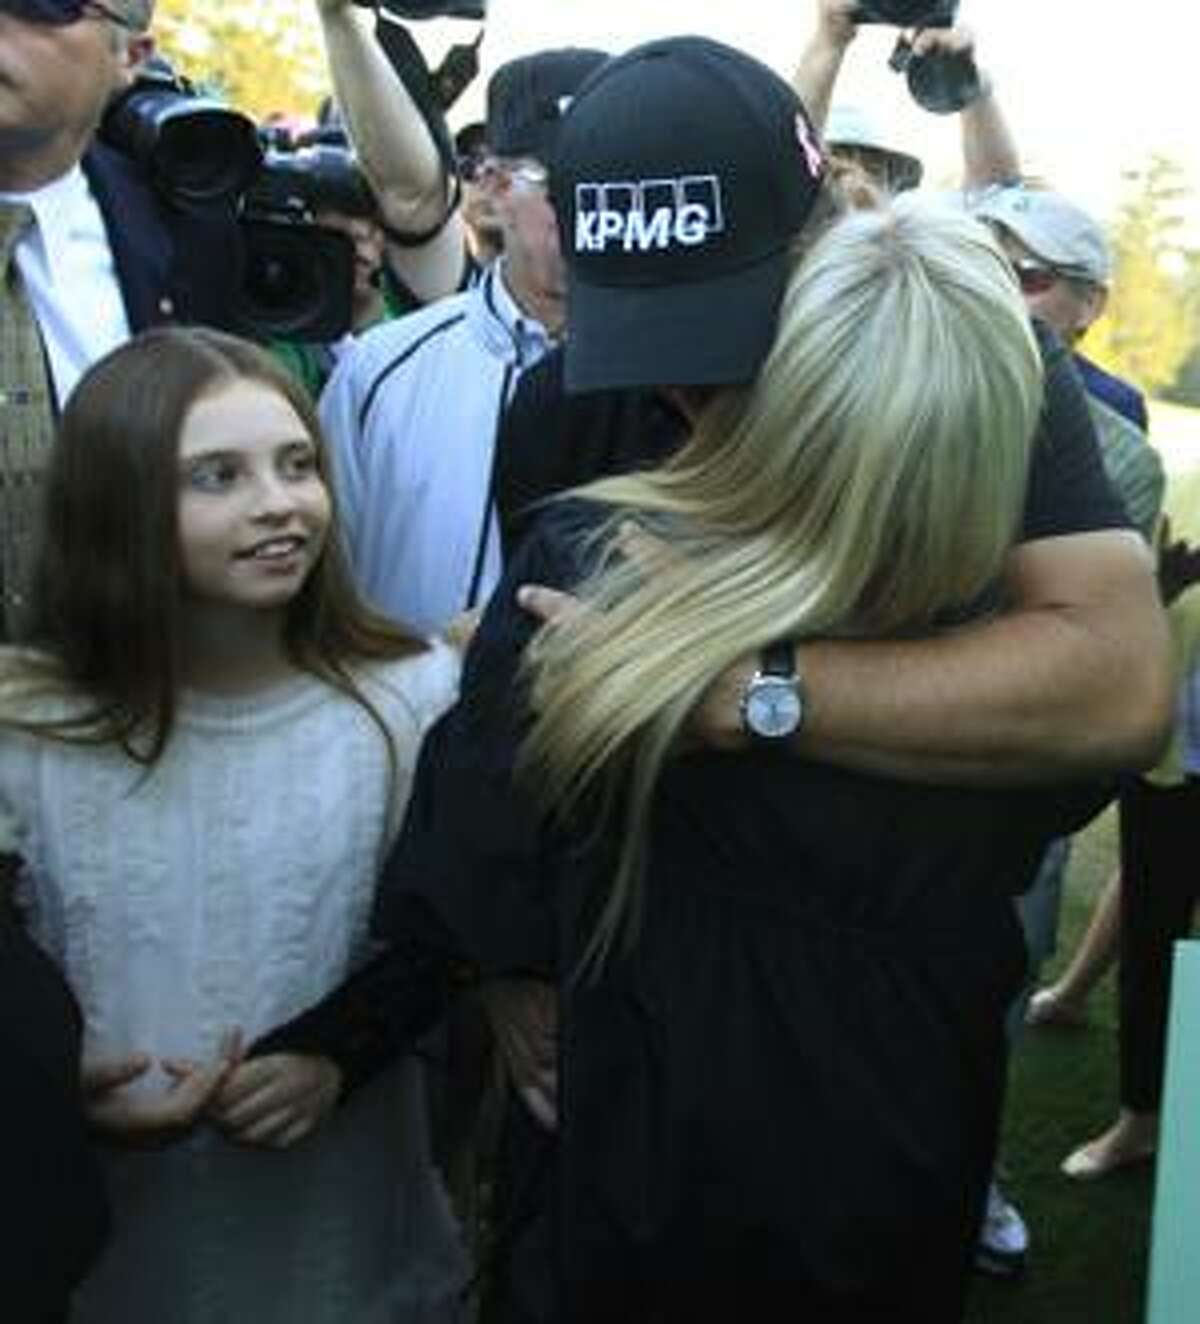 Daughter Amanda, left, watches as Phil Mickelson hugs his wife Amy after winning the Masters golf tournament in Augusta, Ga., Sunday. (AP Photo/Charlie Riedel)